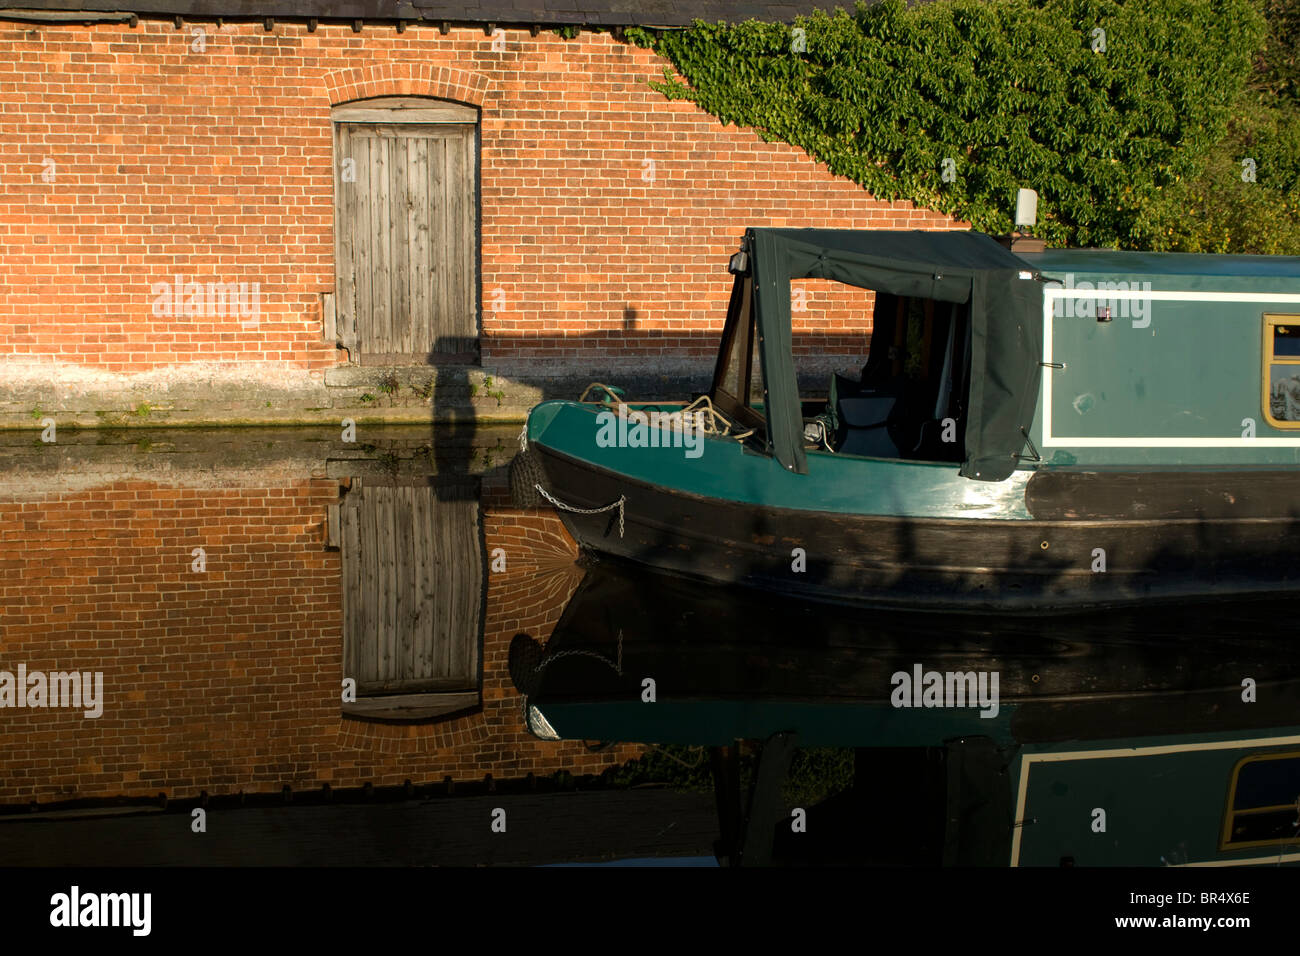 A narrowboat on the Oxford Canal near Aynho - Stock Image